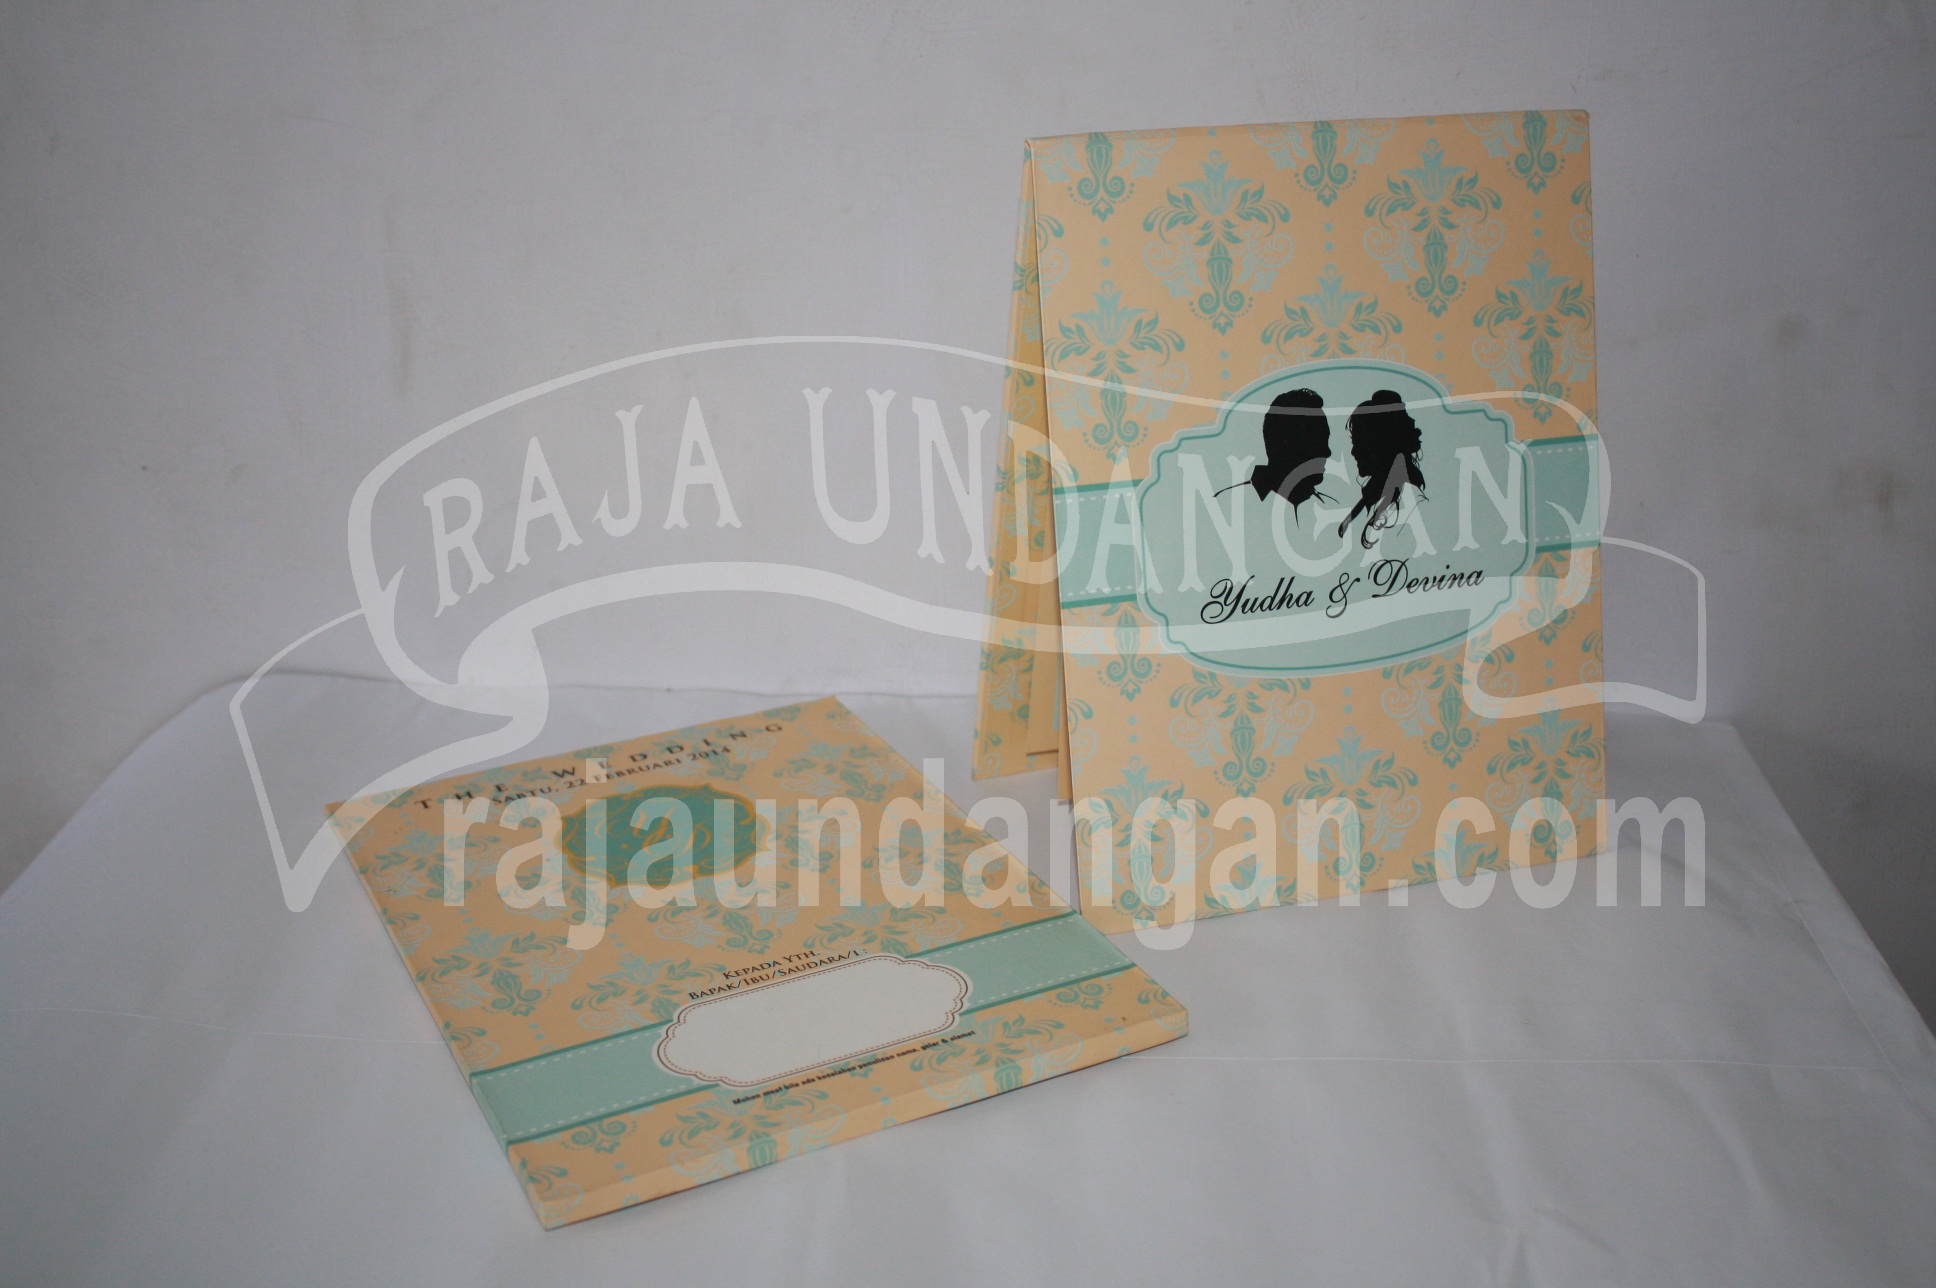 Undangan Pernikahan Hardcover Pop Up Pakai Amplop Yudha dan Devina EDC 47 - Pesan Wedding Invitations Simple di Jambangan Karah